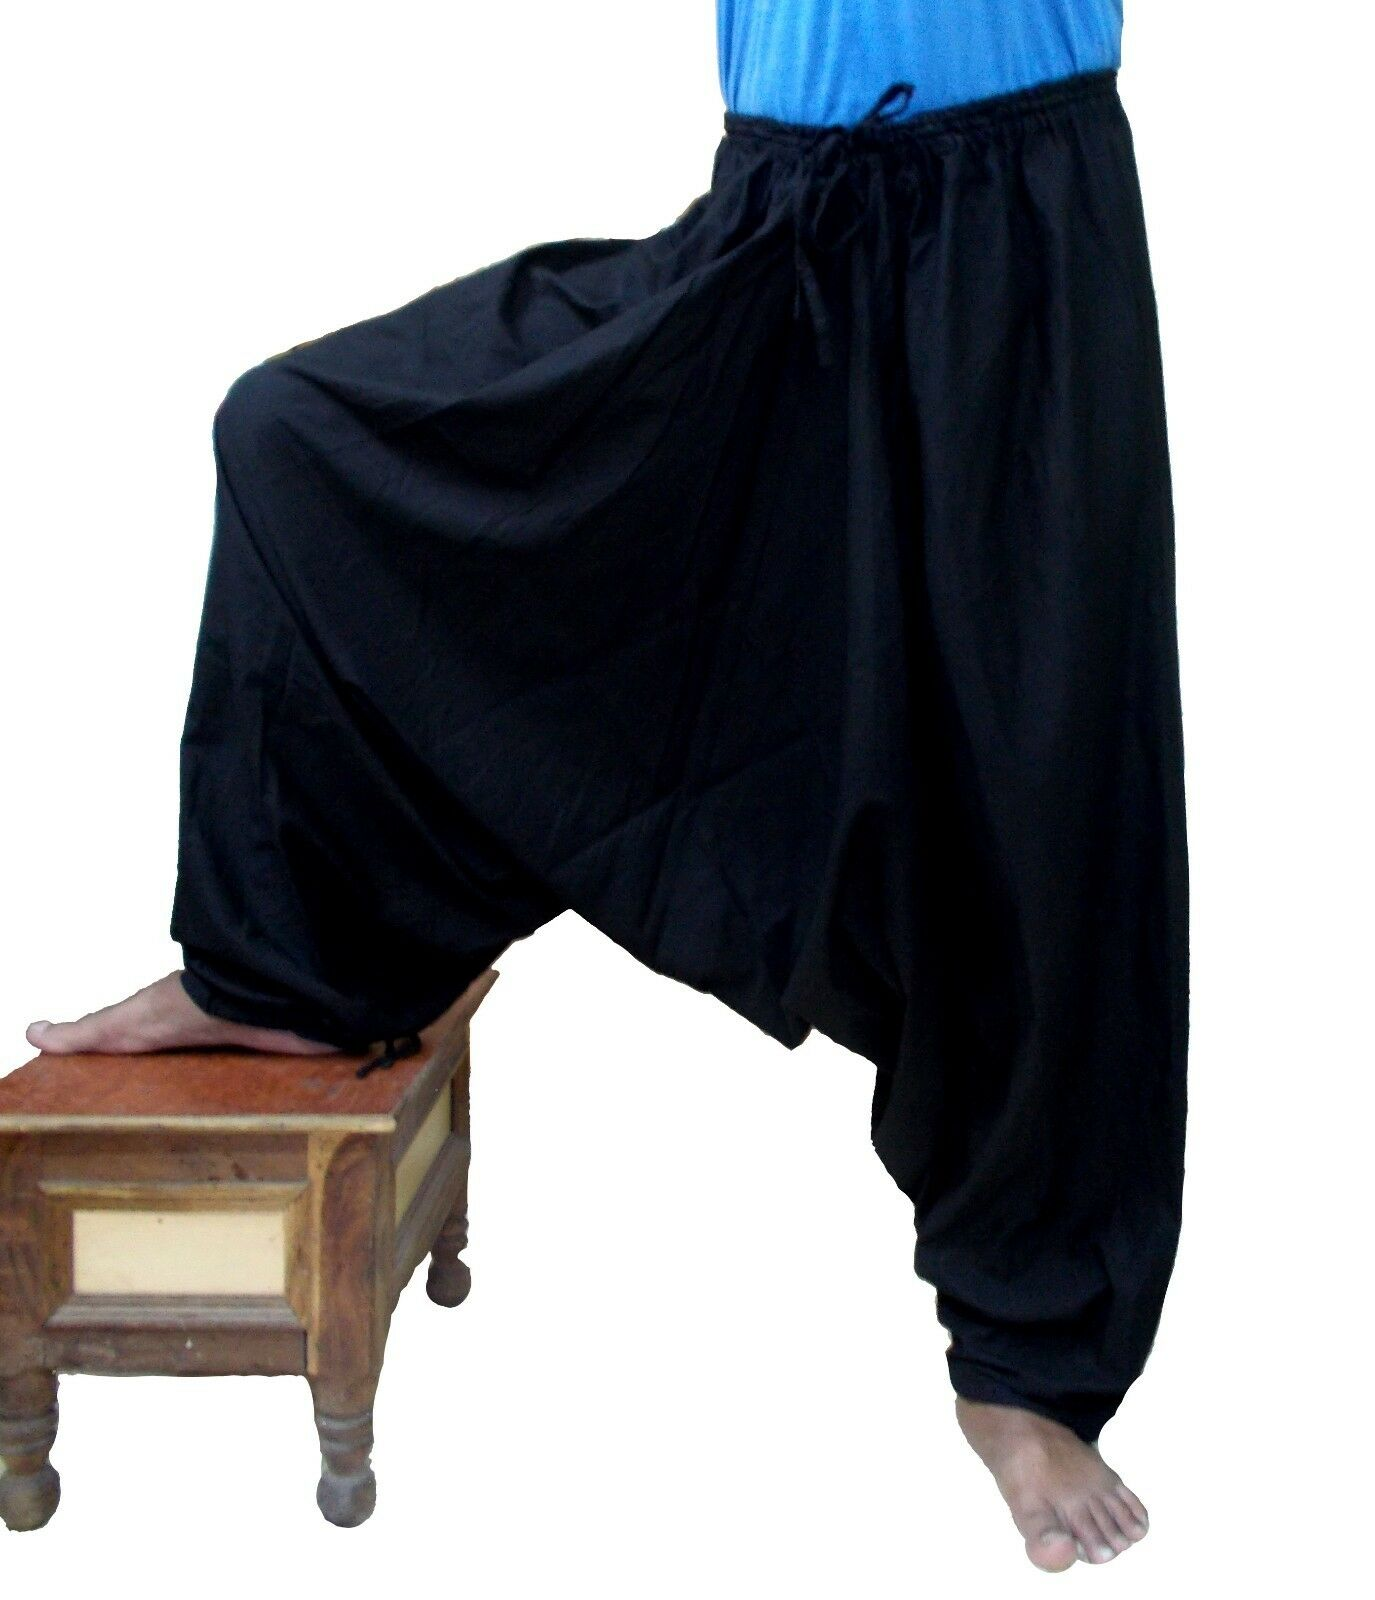 Details about Indian Men's Black Cotton Harem Pants Trousers Afghani ...